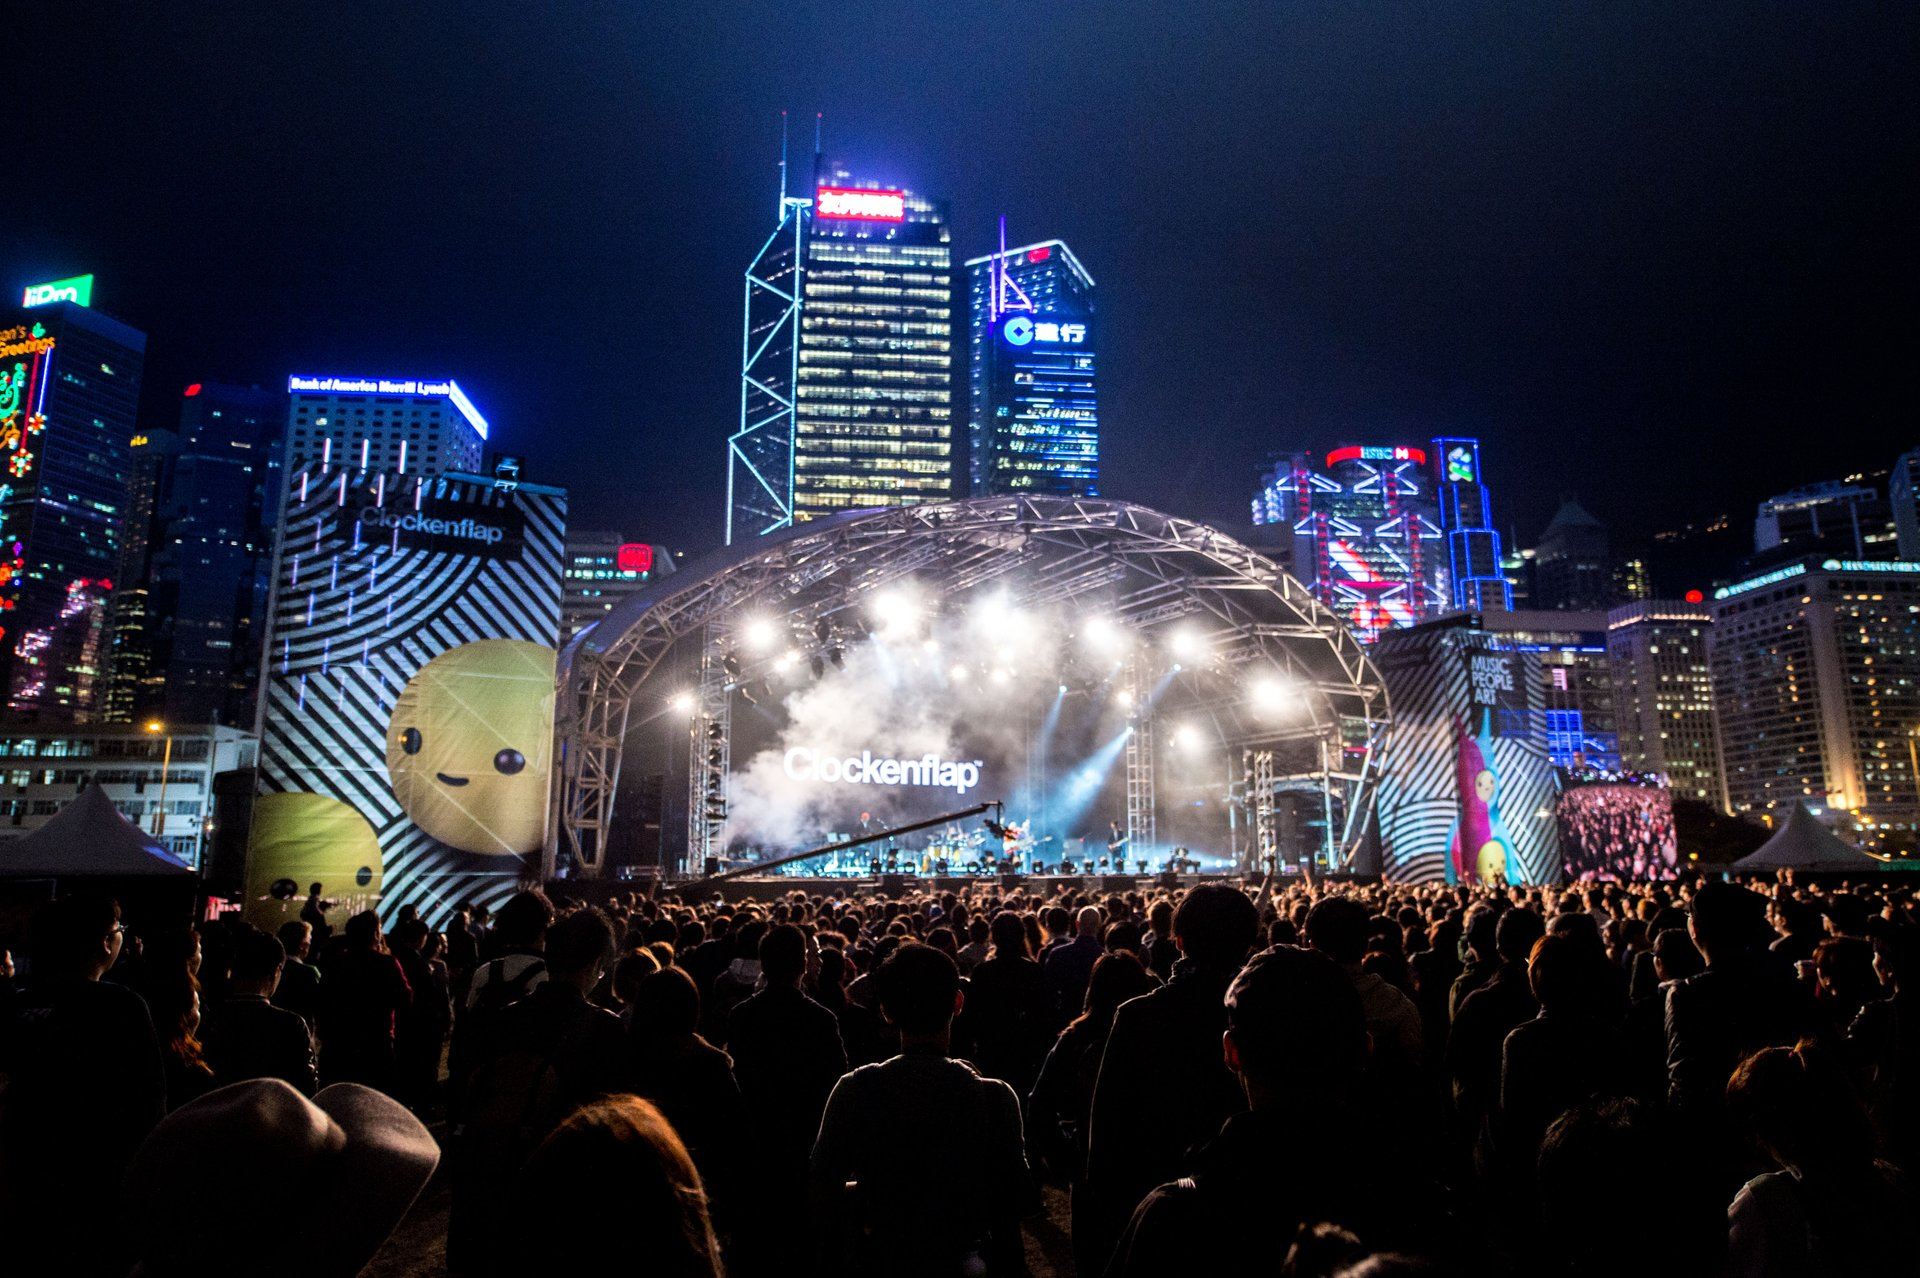 Clockenflap in Hong Kong - Best Time